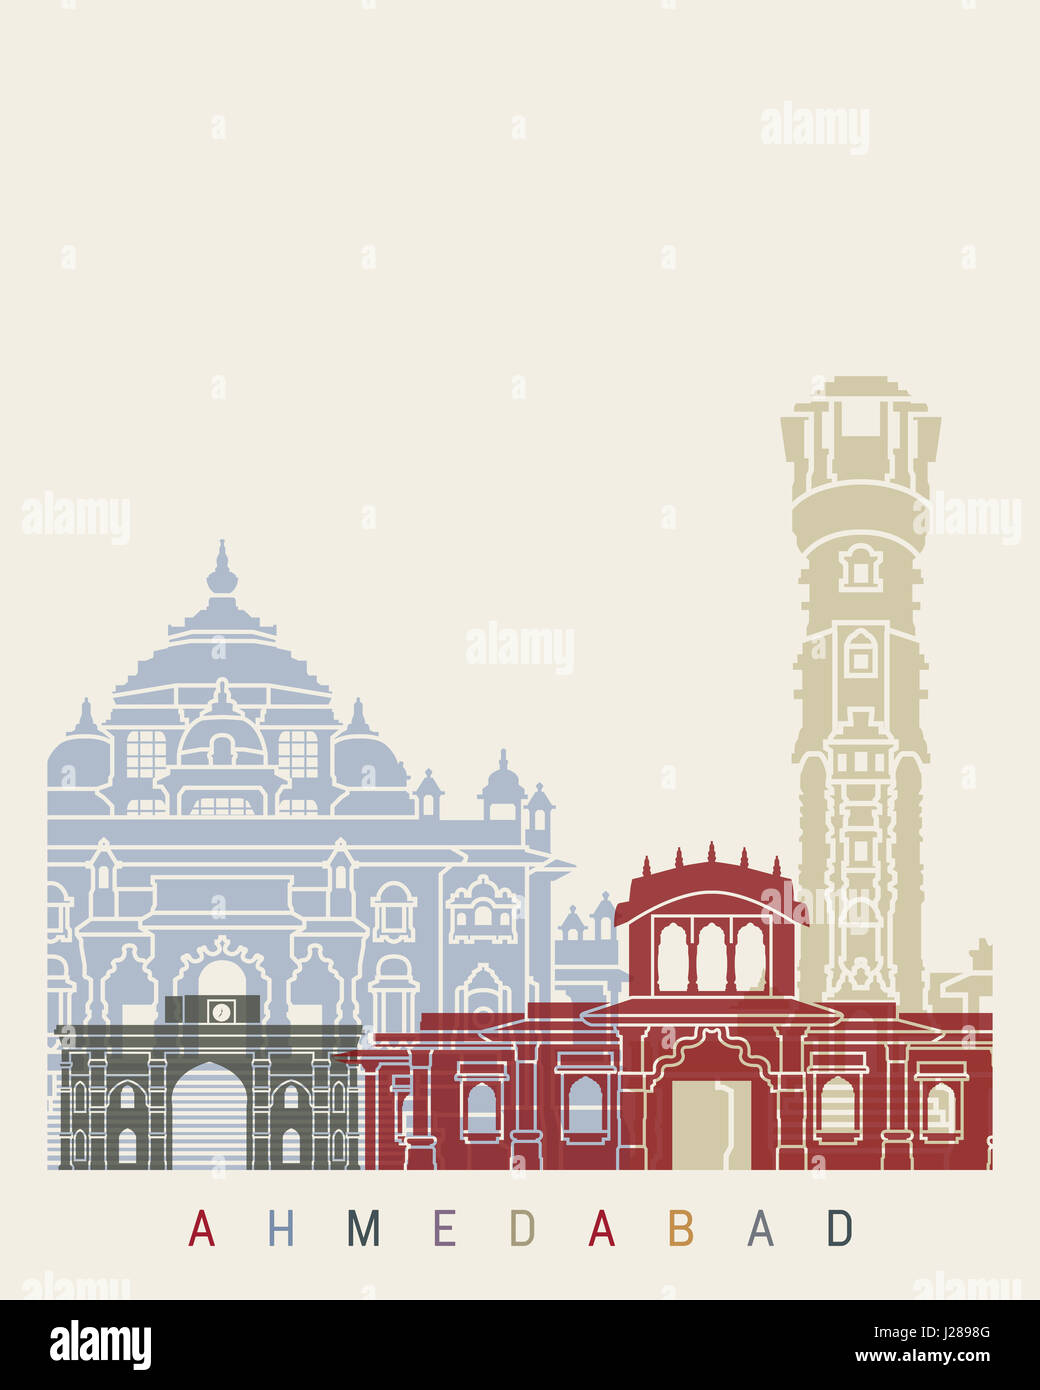 Ahmedabad skyline poster in editable vector file - Stock Image